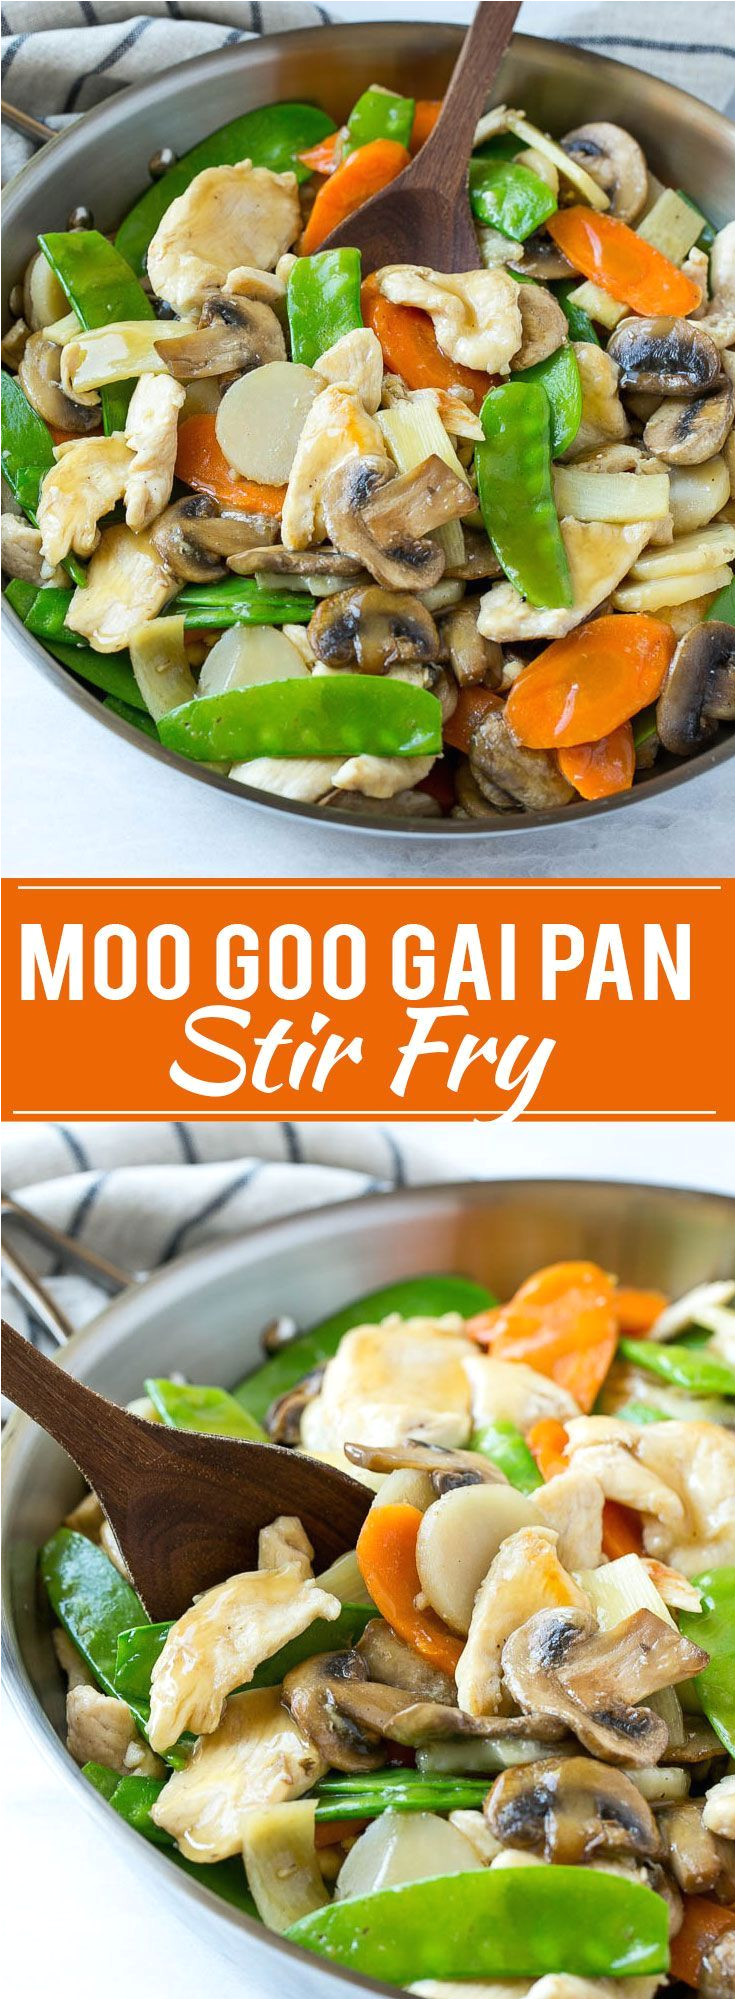 this recipe for moo goo gai pan is a classic dish of chicken and vegetables stir